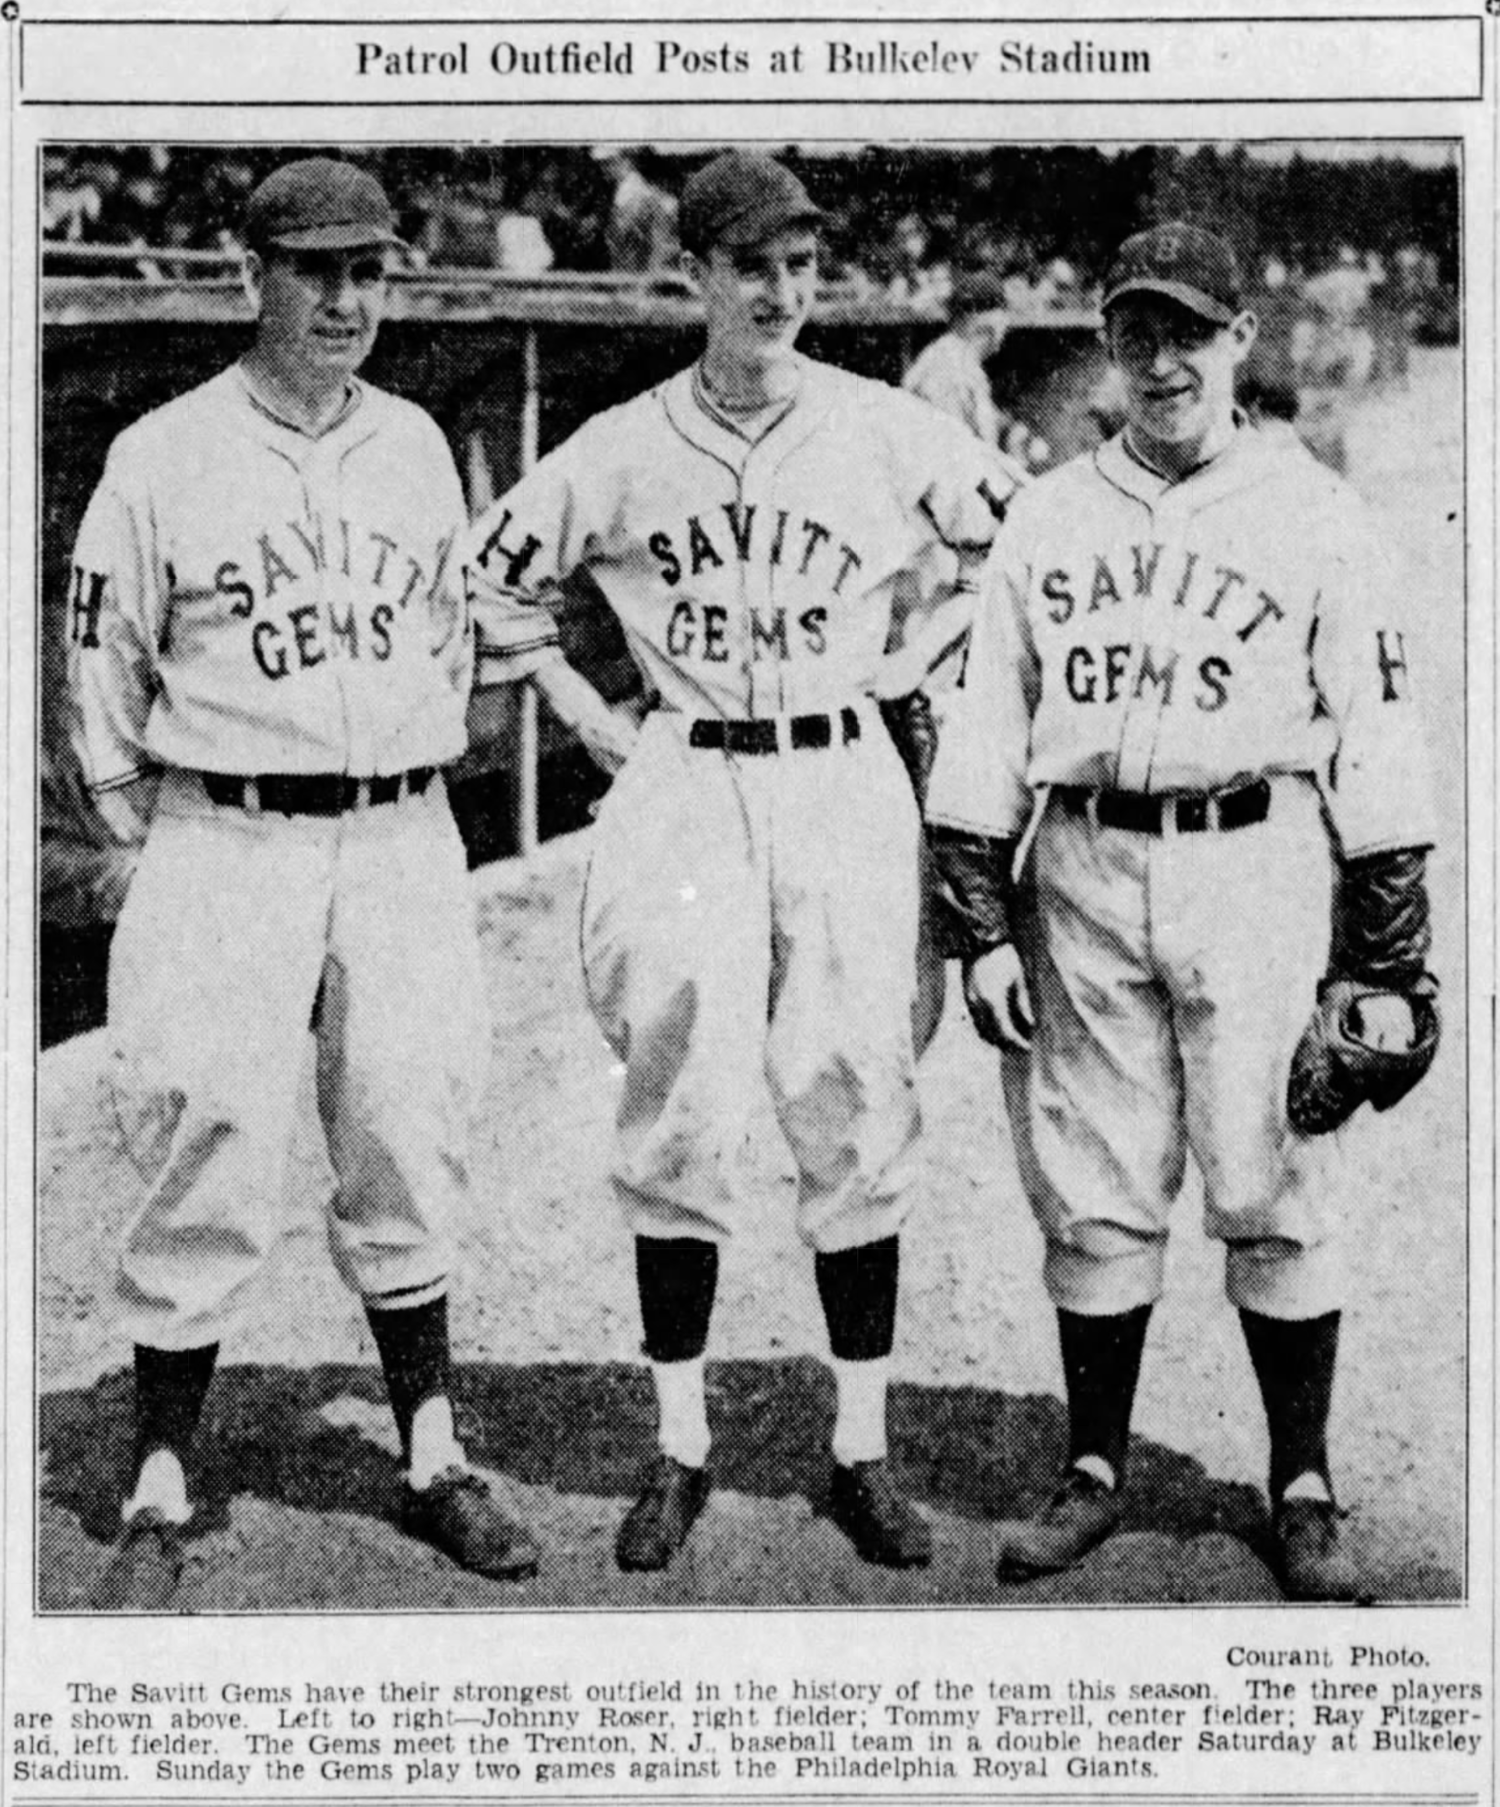 Outfielders of the Savitt Gems, 1936.